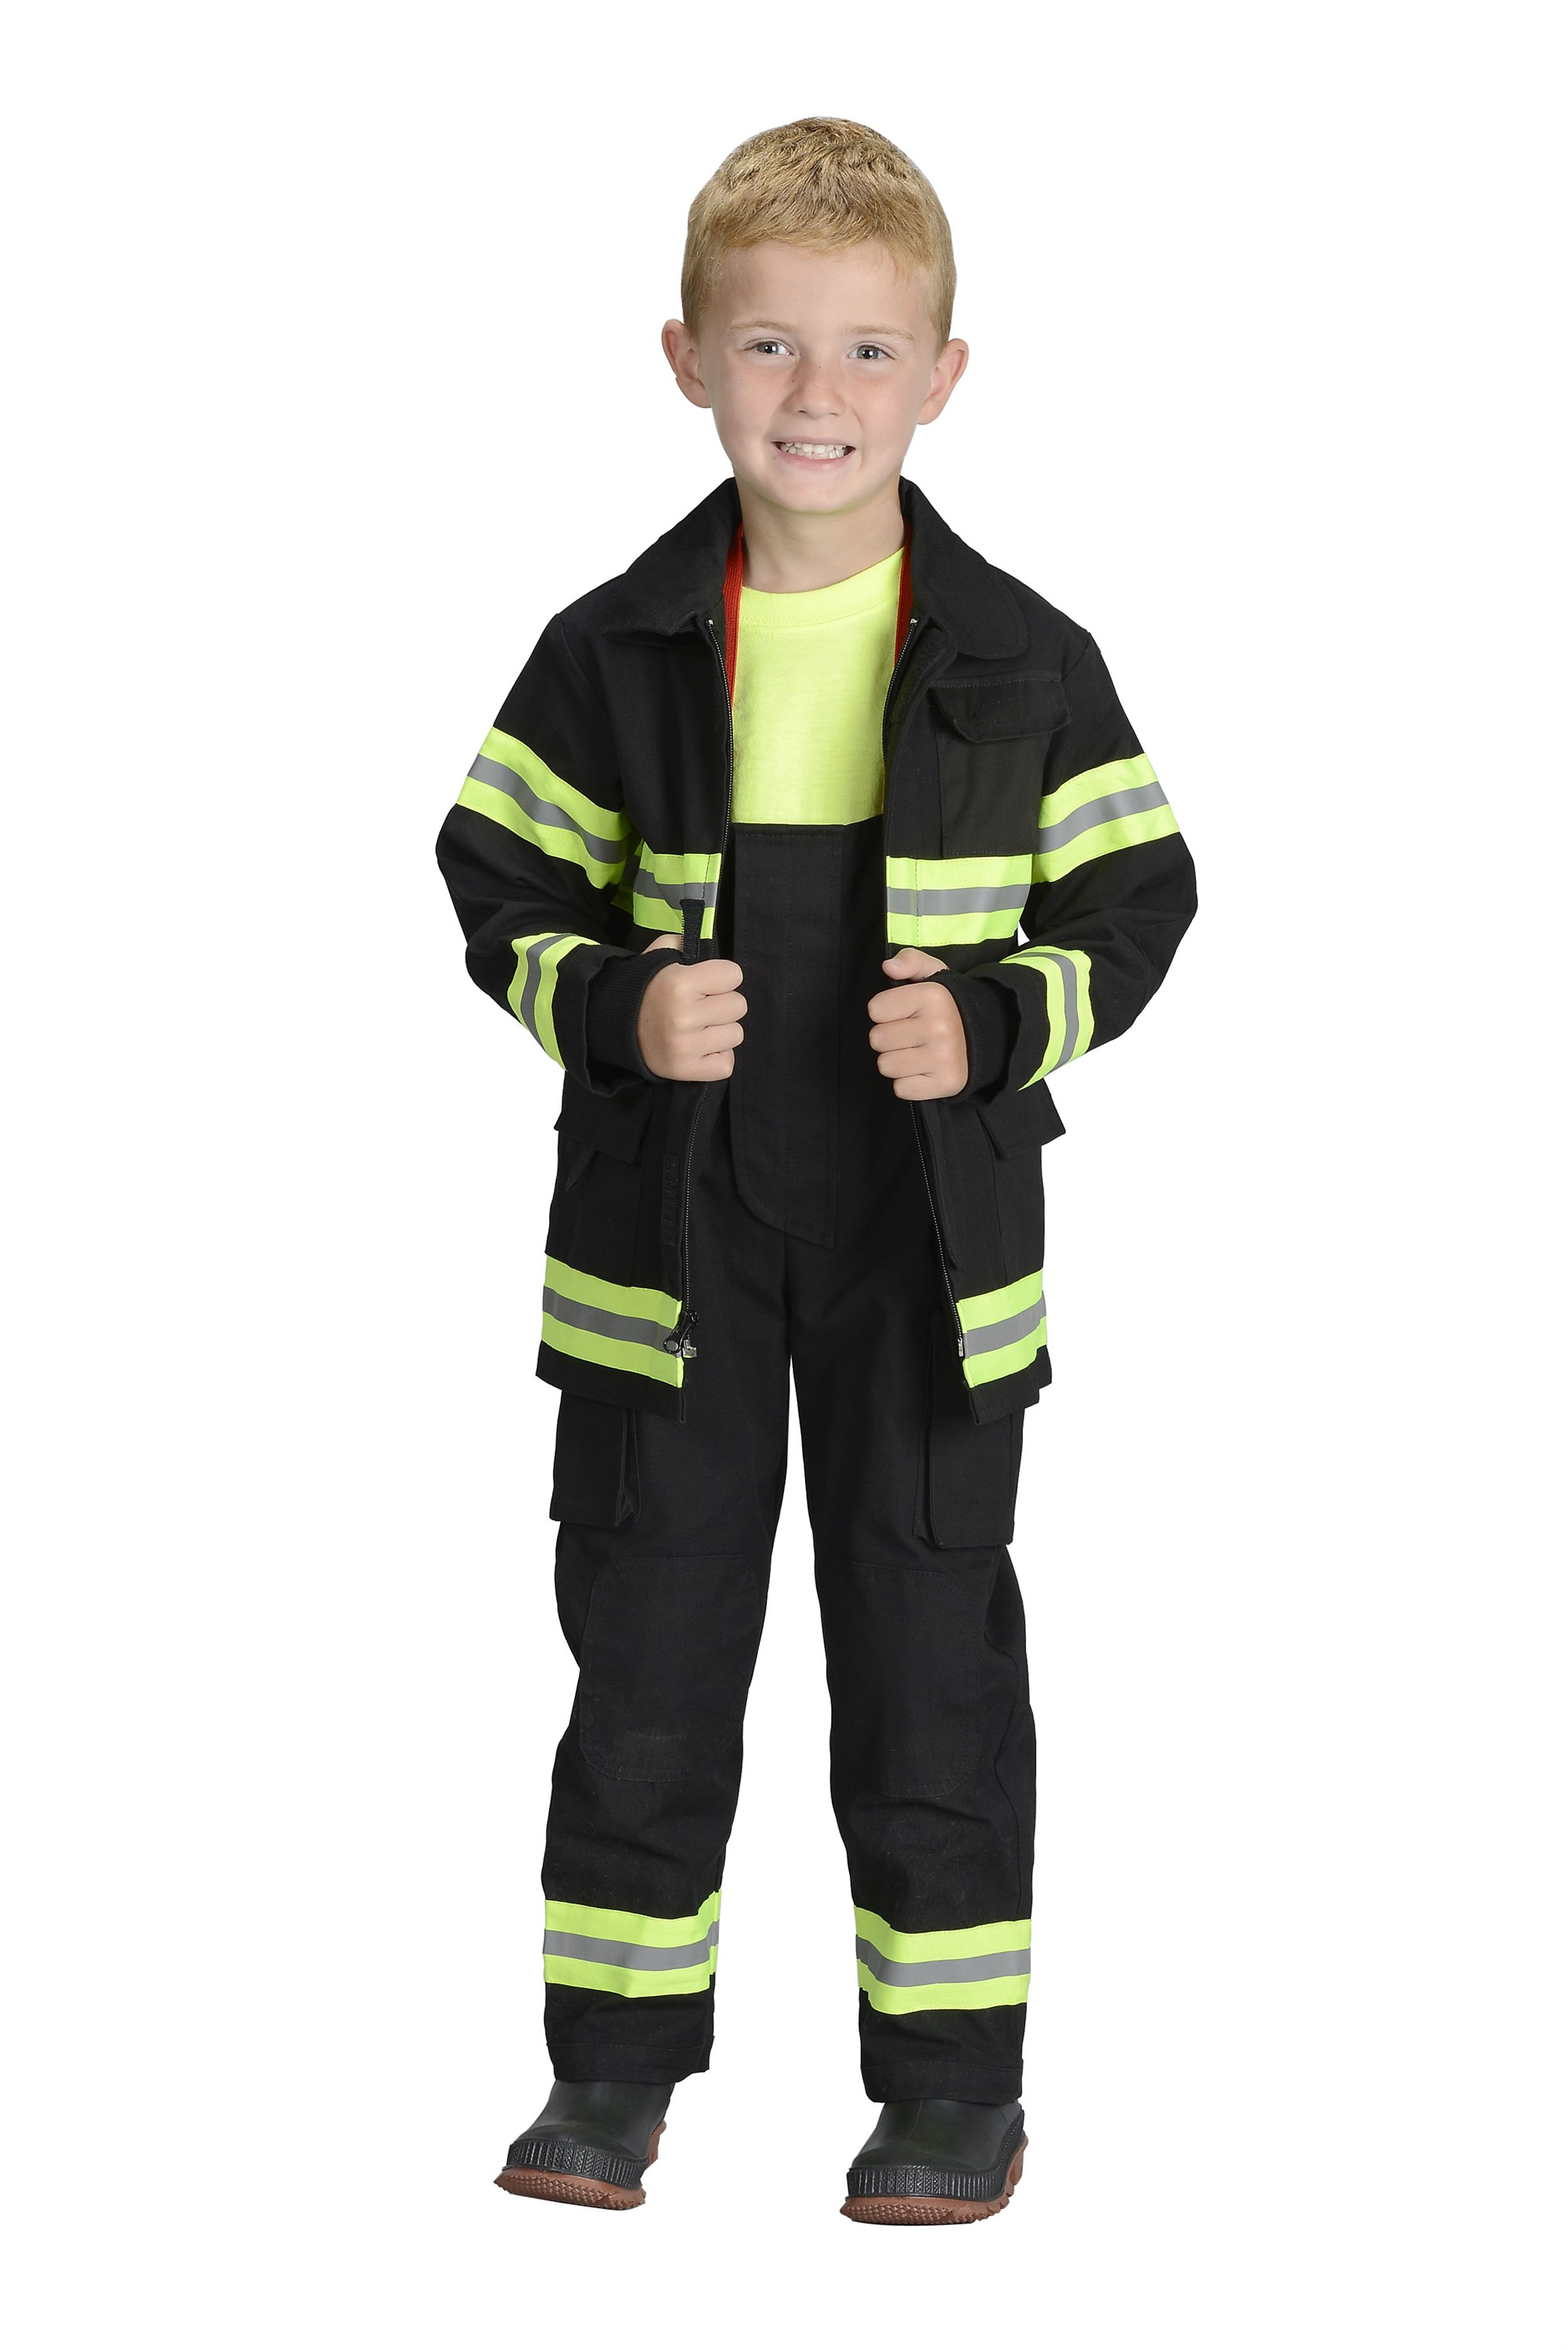 Jr. Firefighter Suit New YORK In Black or Tan by Aeromax